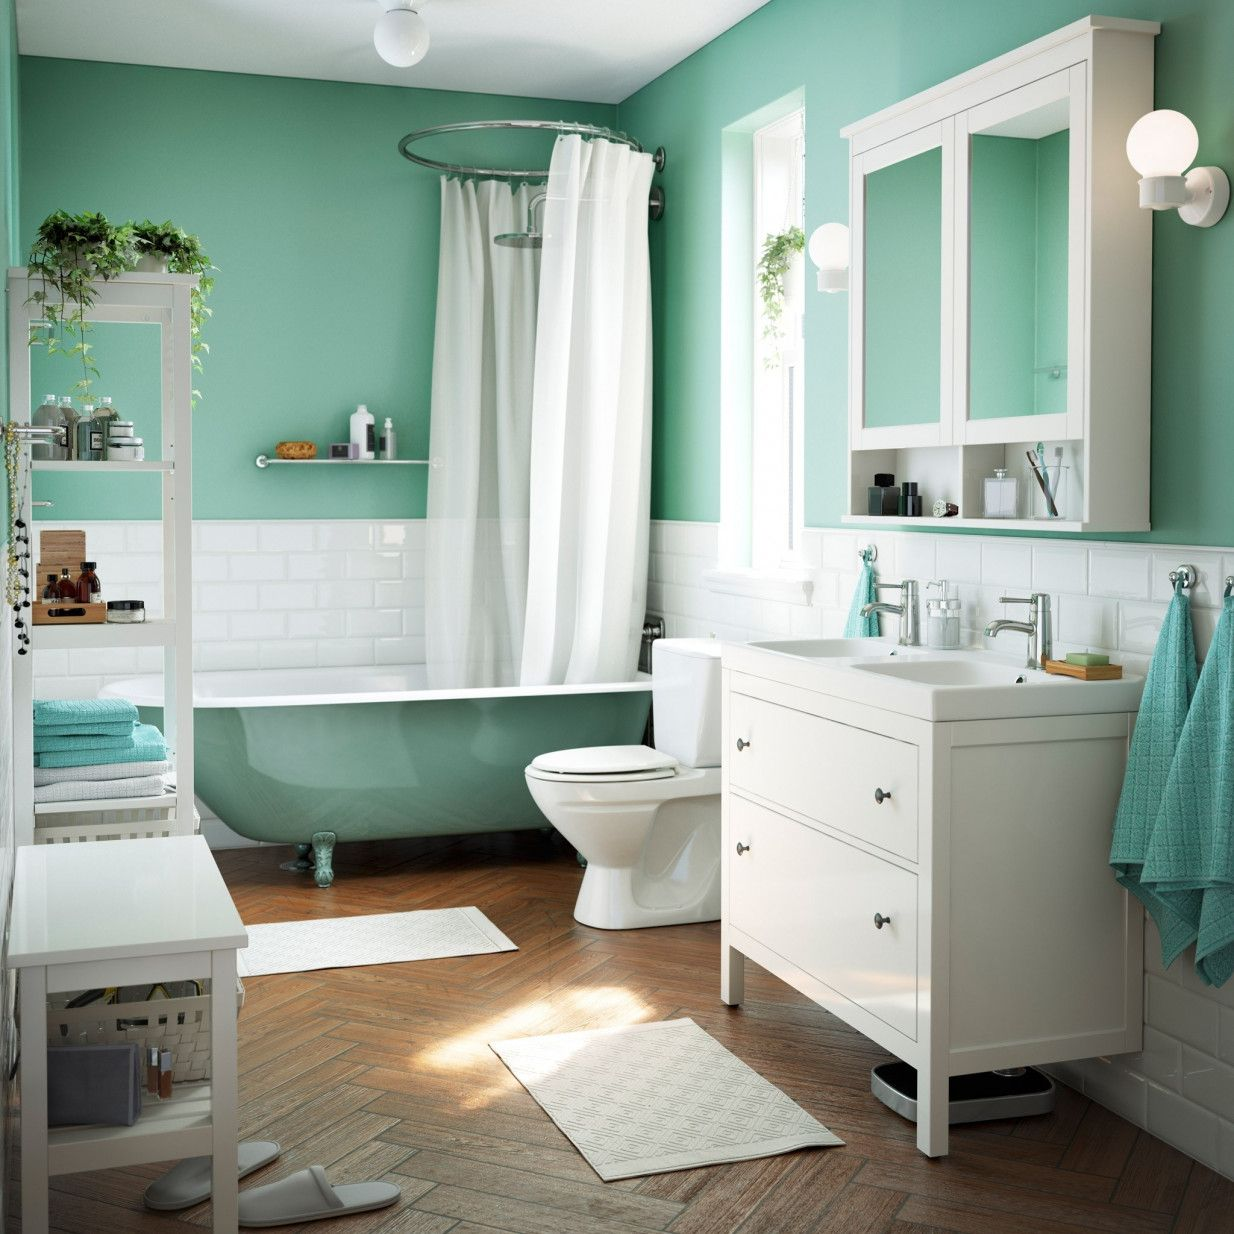 2019 Home Bargains Bathroom Cabinets Top Rated Interior Paint Check More At Http 1coolair Com Home Complete Bathroom Remodel Ideal Bathrooms Green Bathroom